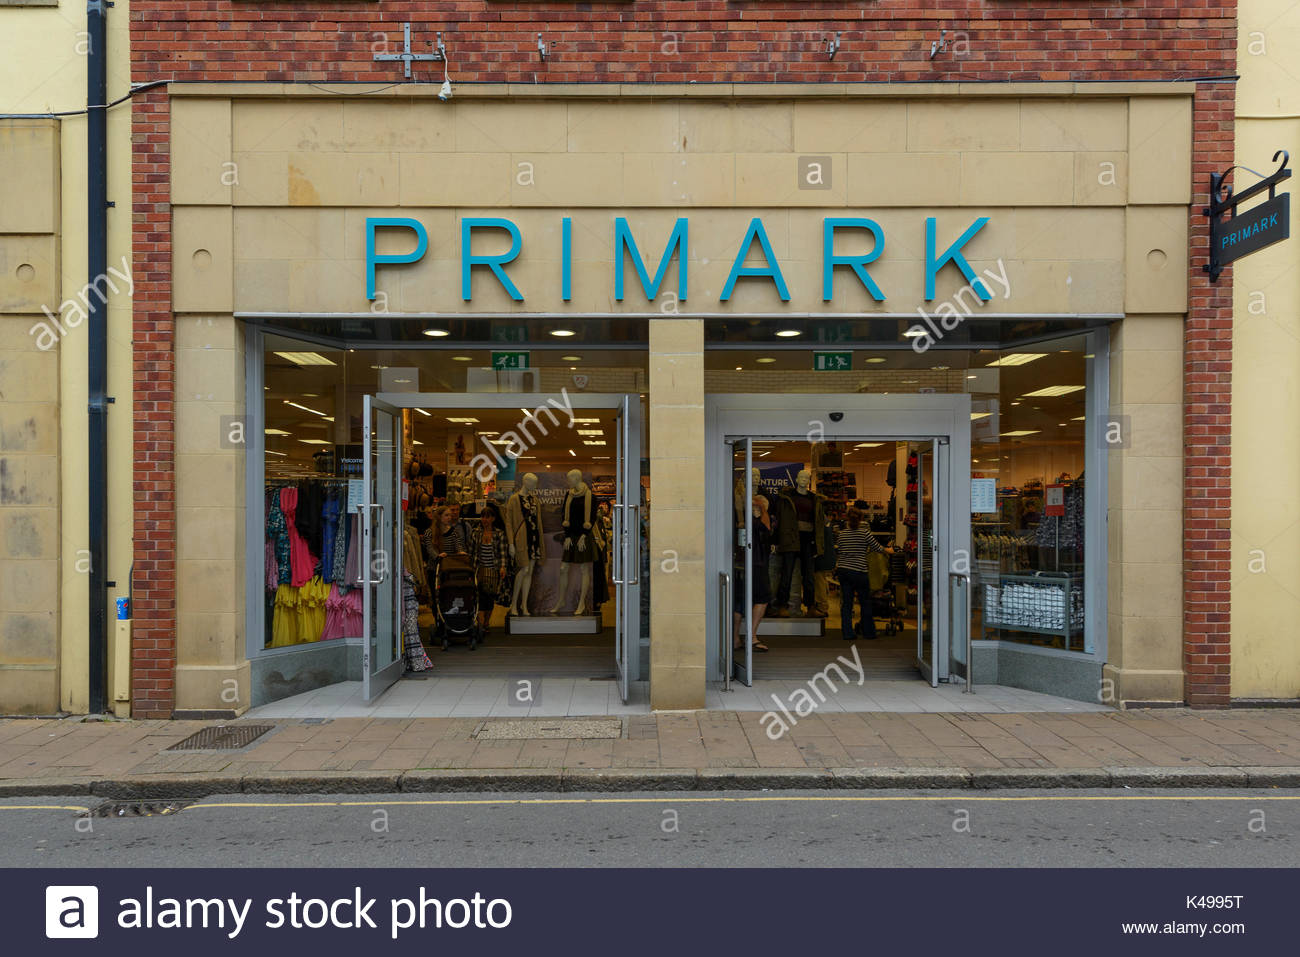 Primark clothes shop Barnstaple Devon England UK & Primark clothes shop Barnstaple Devon England UK Stock Photo ...